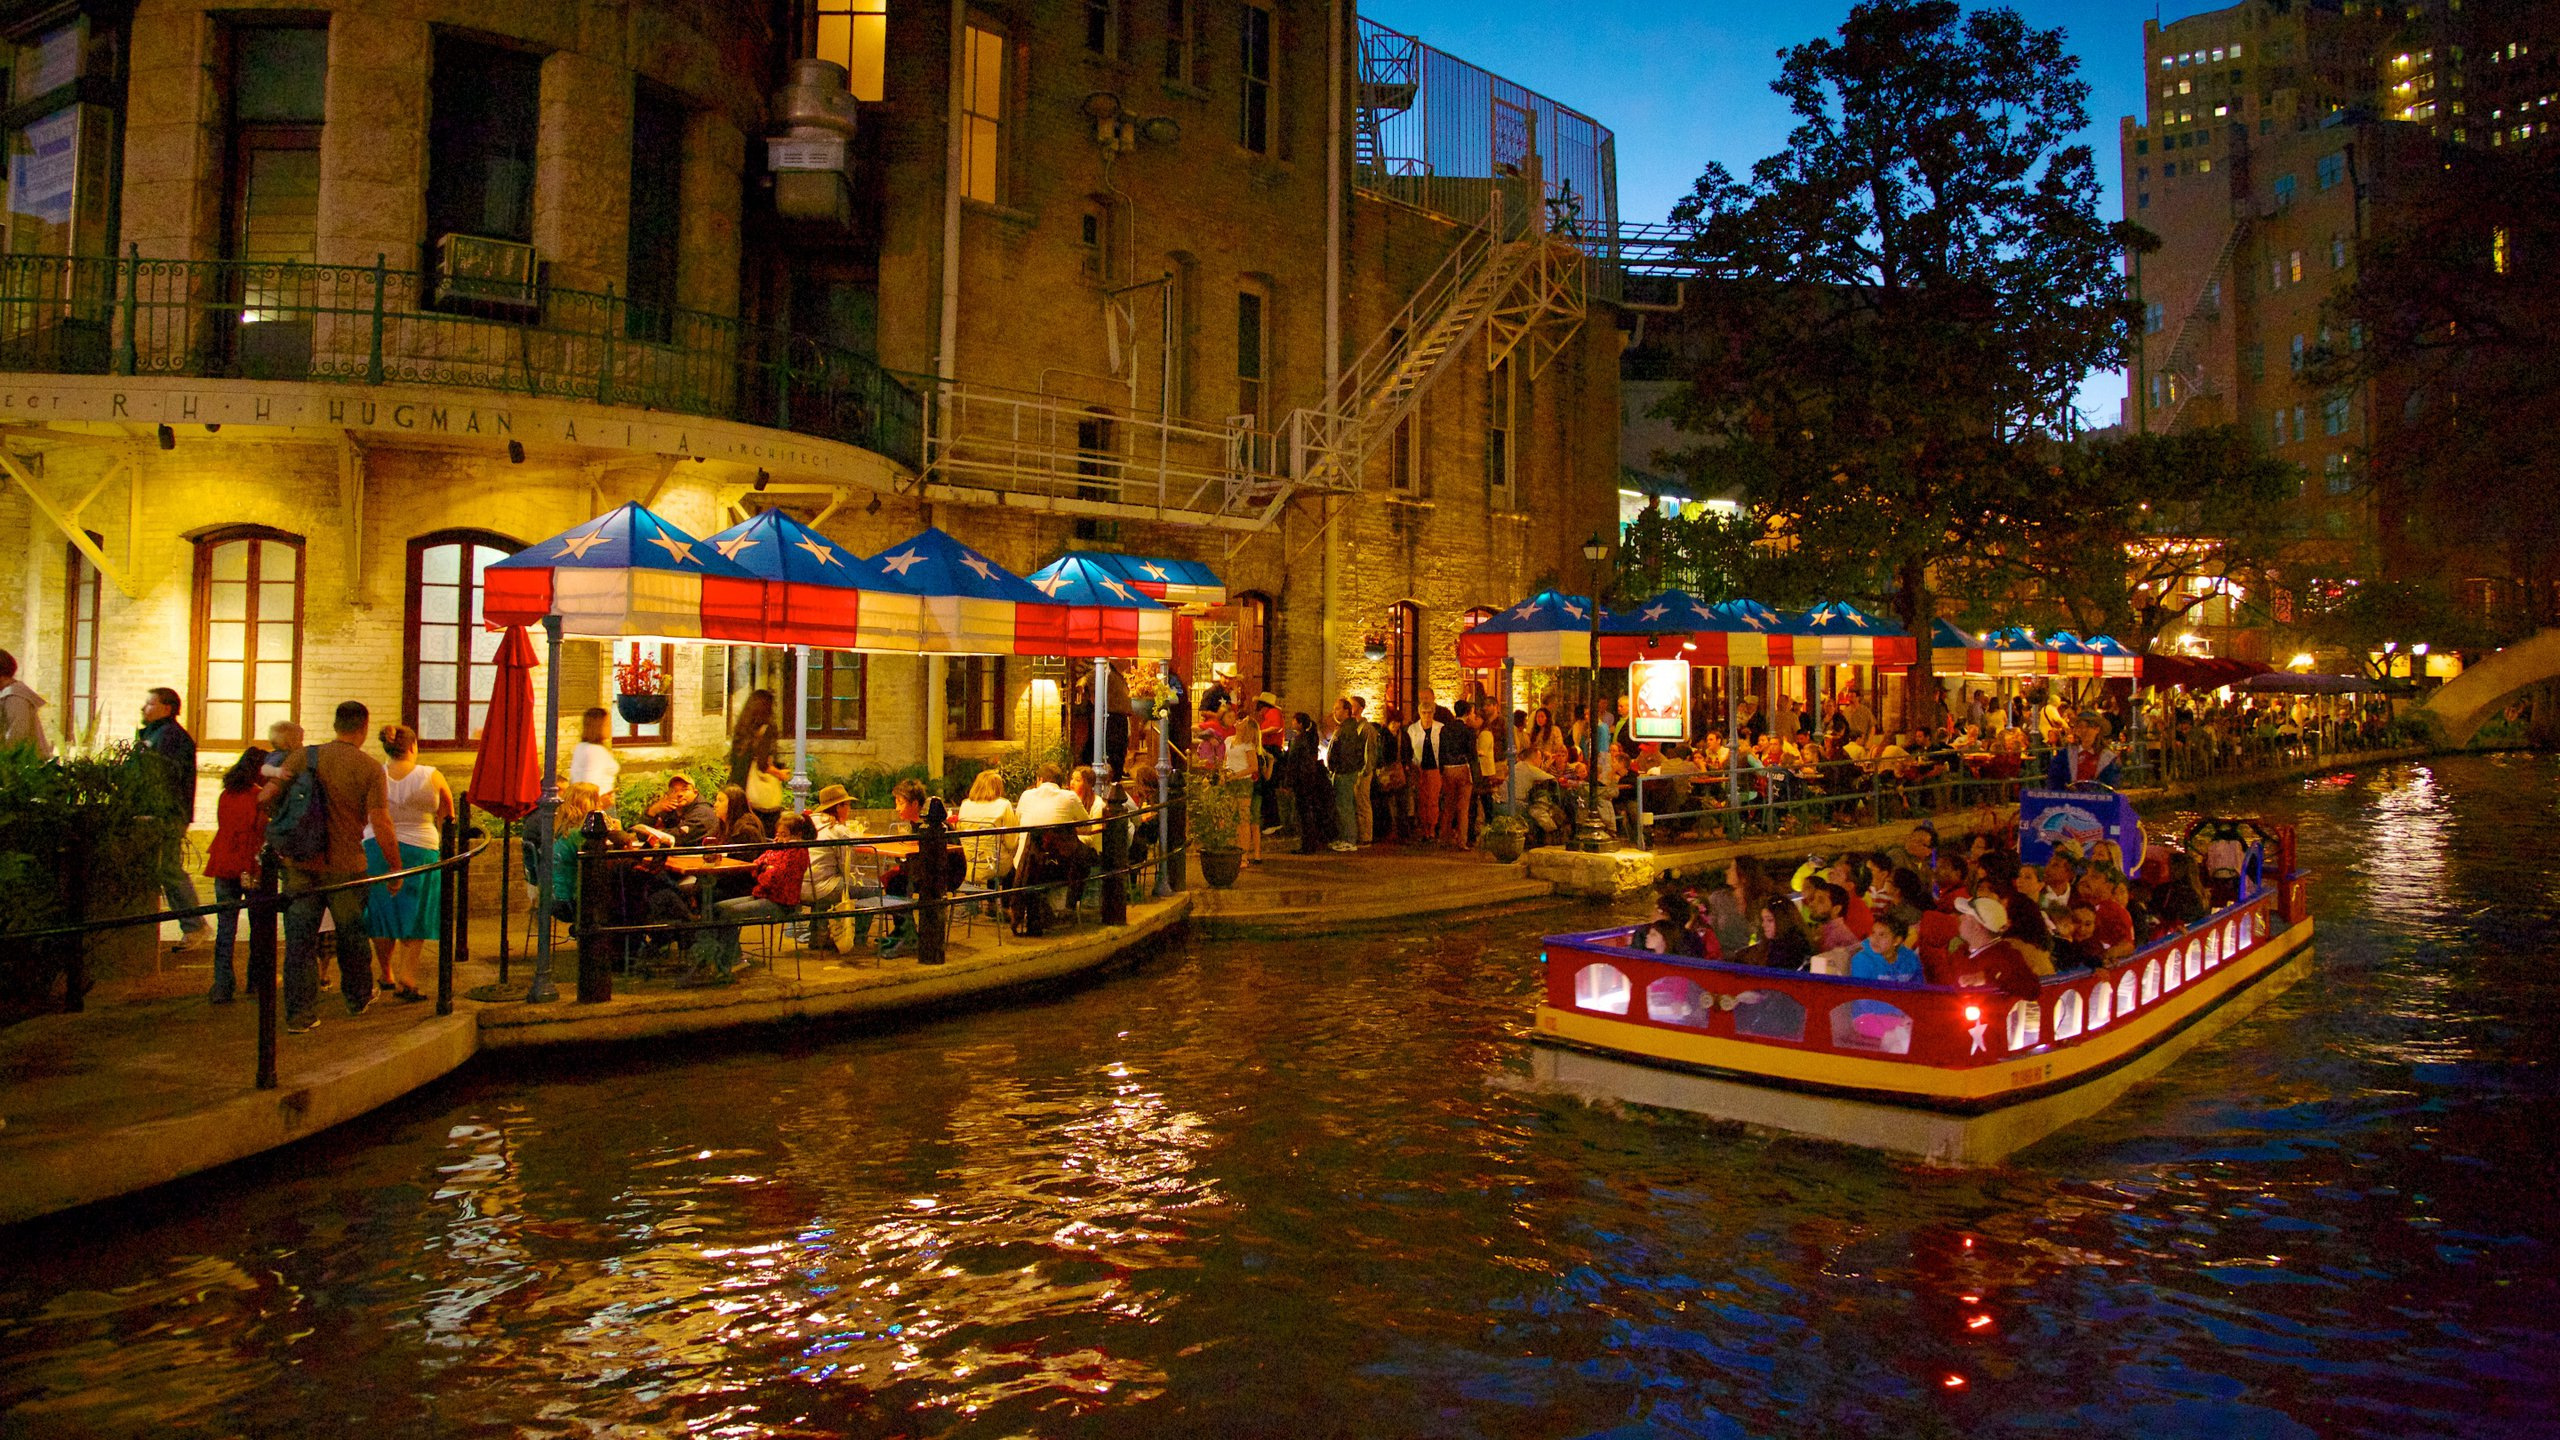 10 Best Hotels With Bars In Downtown San Antonio For 2020